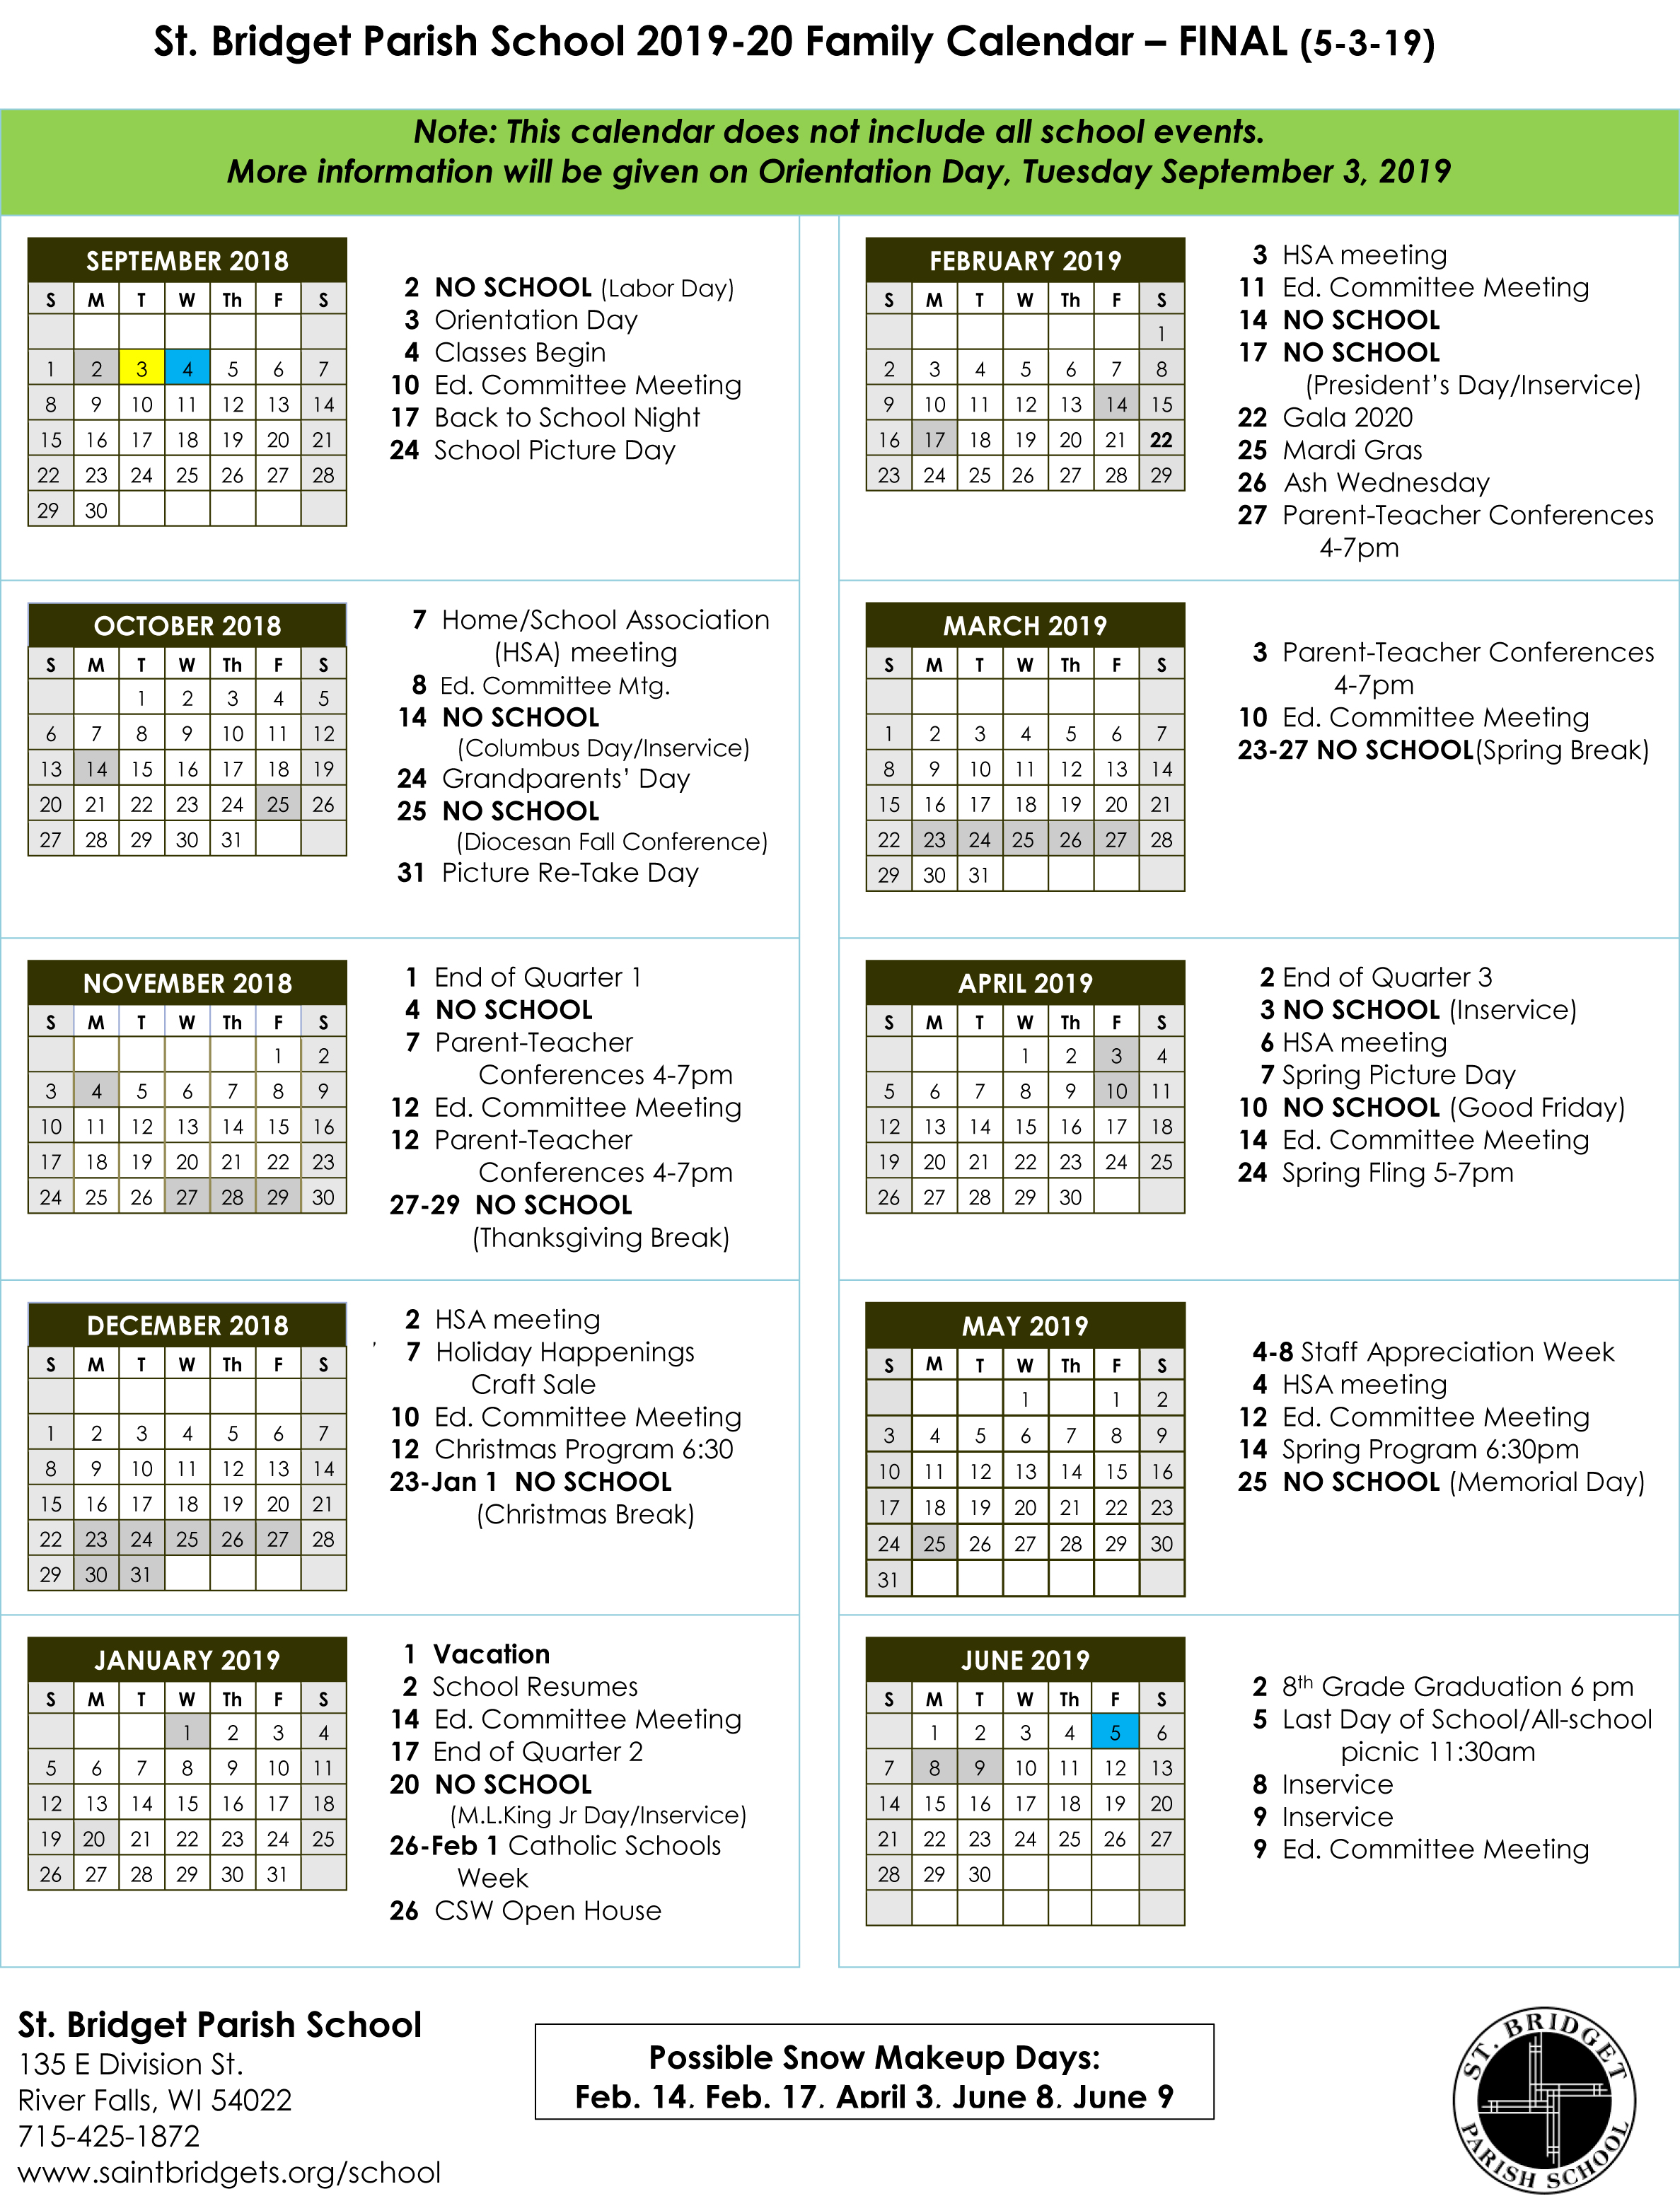 St  Bridget School Calendar - Saint Bridget Catholic Community